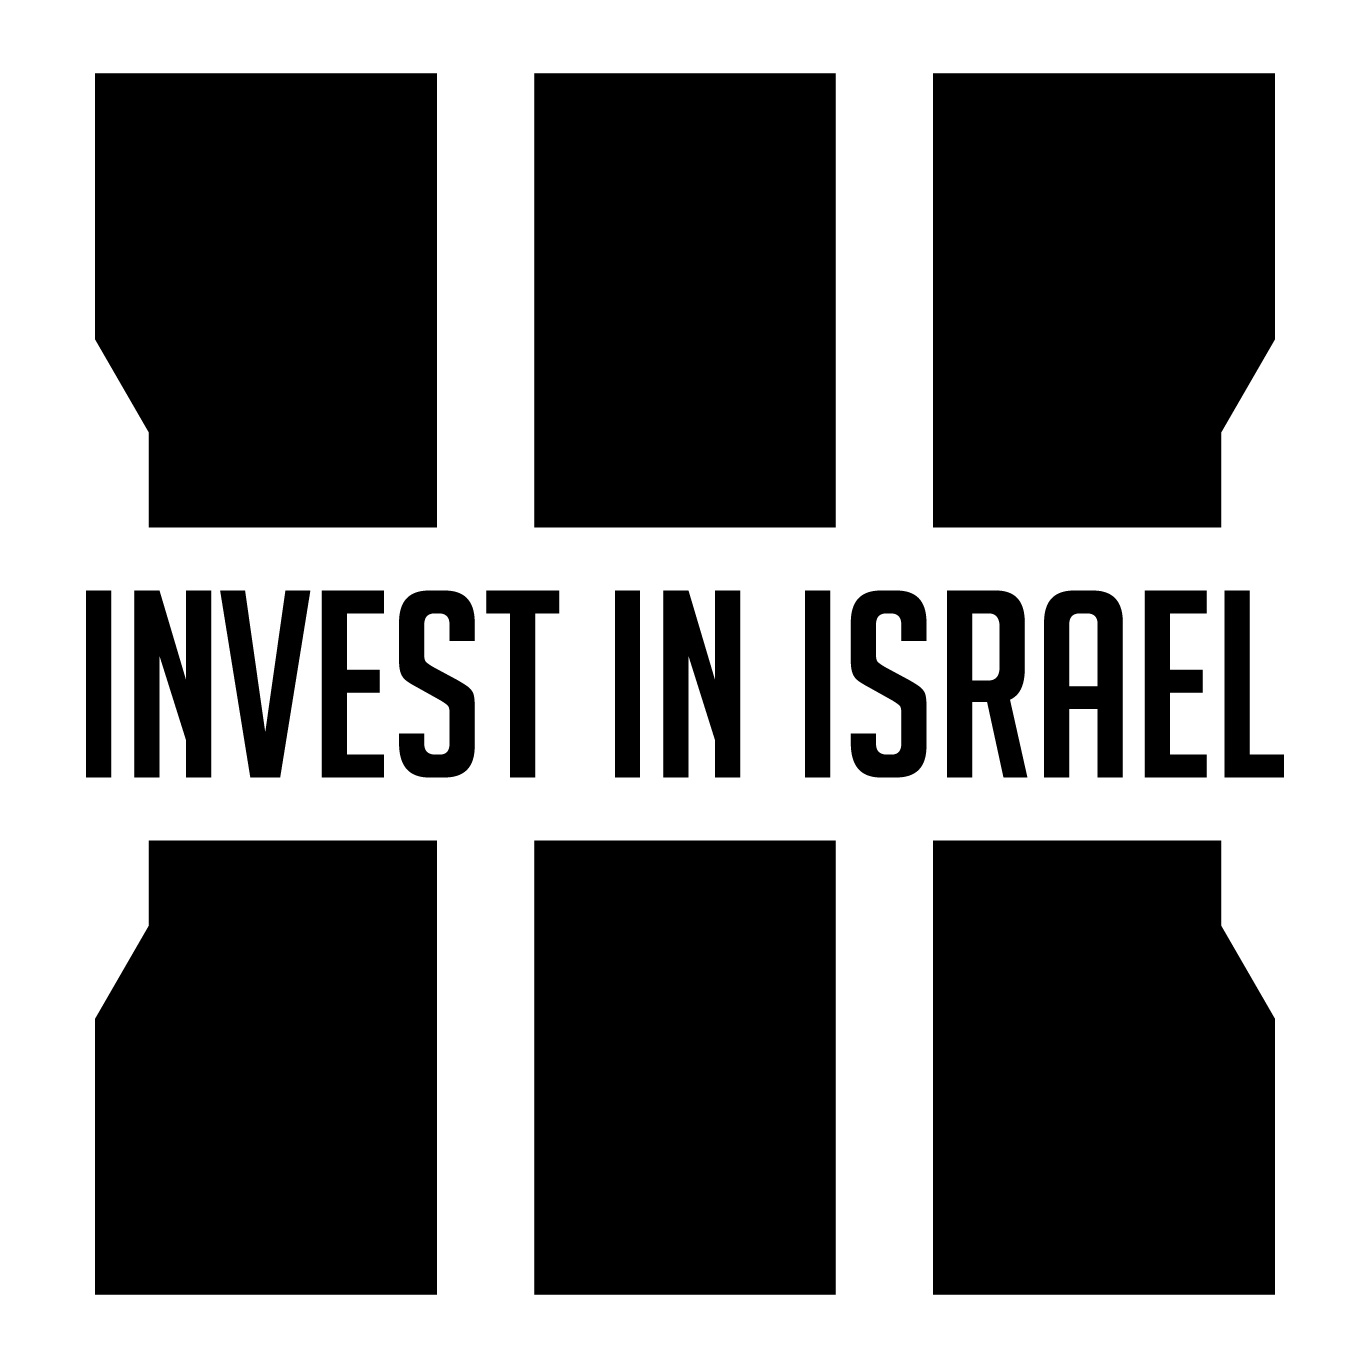 Shabbos House » III – Invest In Israel